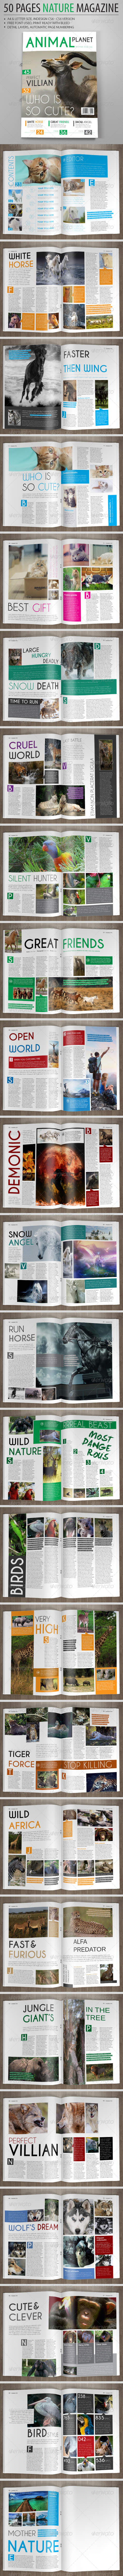 GraphicRiver A4 Letter 50 Pages Nature Magazine 6493704